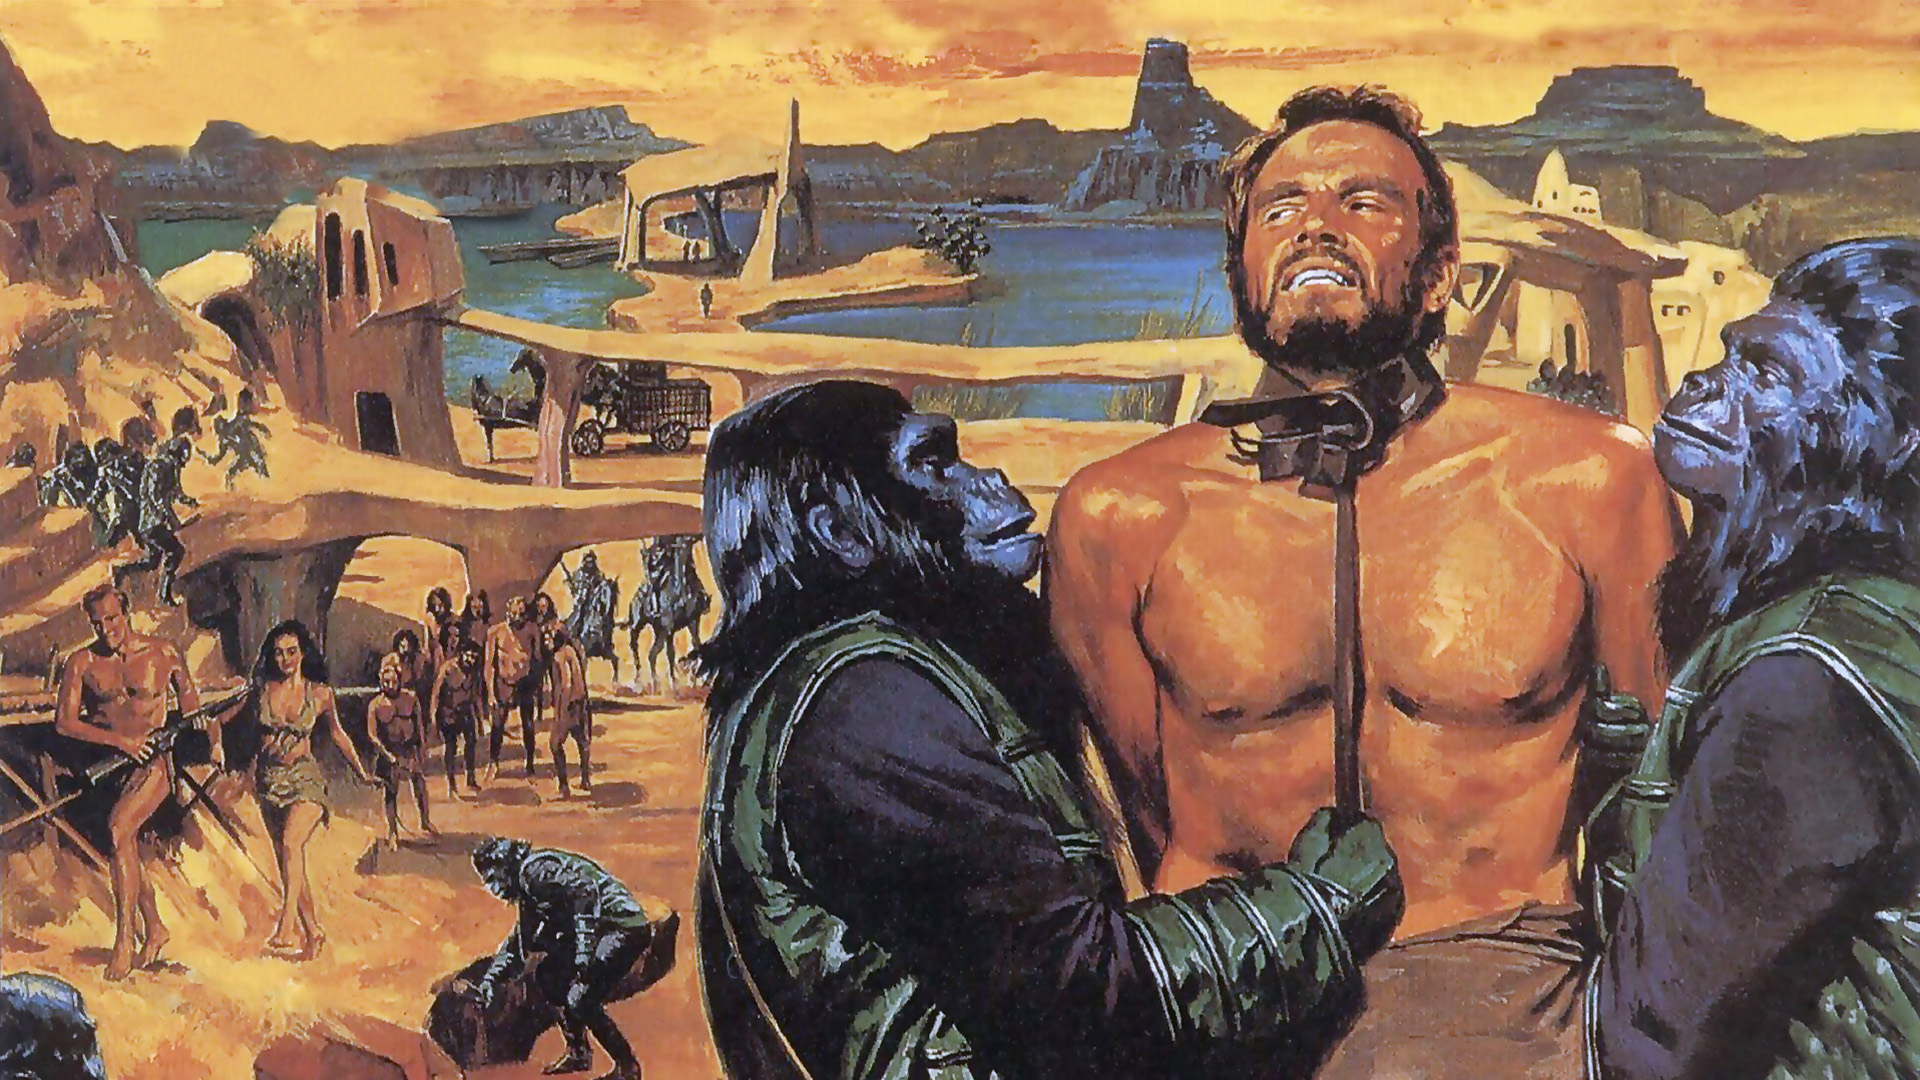 电影 / Planet of the Apes (1968)||https://wall.alphacoders.com/big.php?i=794111&lang=Chinese